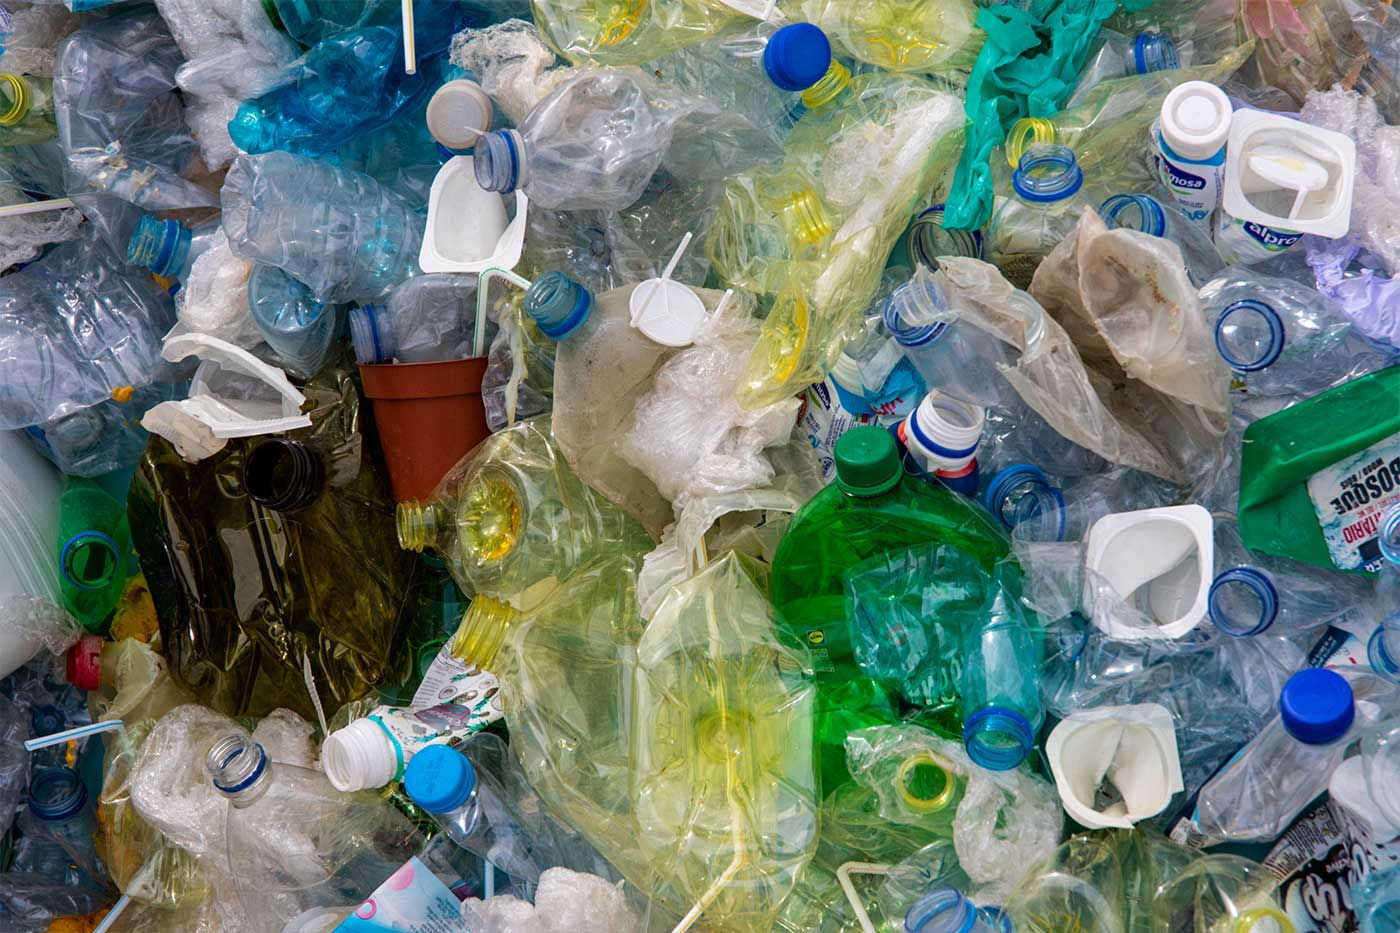 P&G, Unilever & Colgate-Palmolive efforts fall short in plastic pollution September 25, 2020